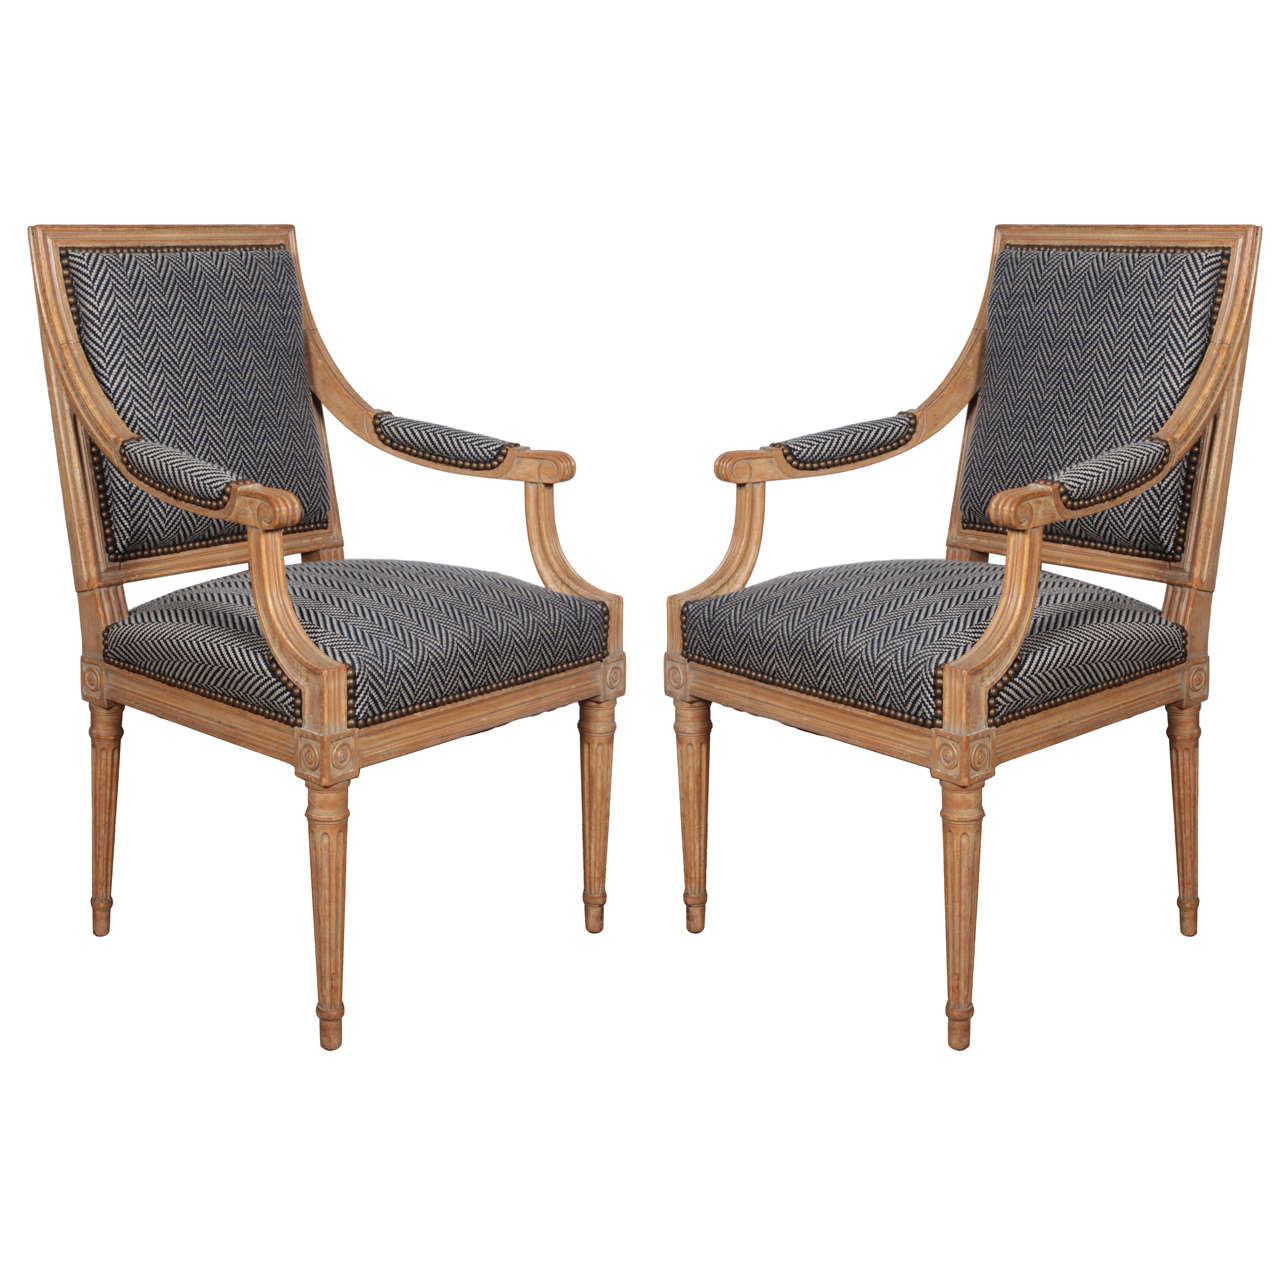 Pair Of 18th Century Herringbone Chairs For Sale At 1stdibs